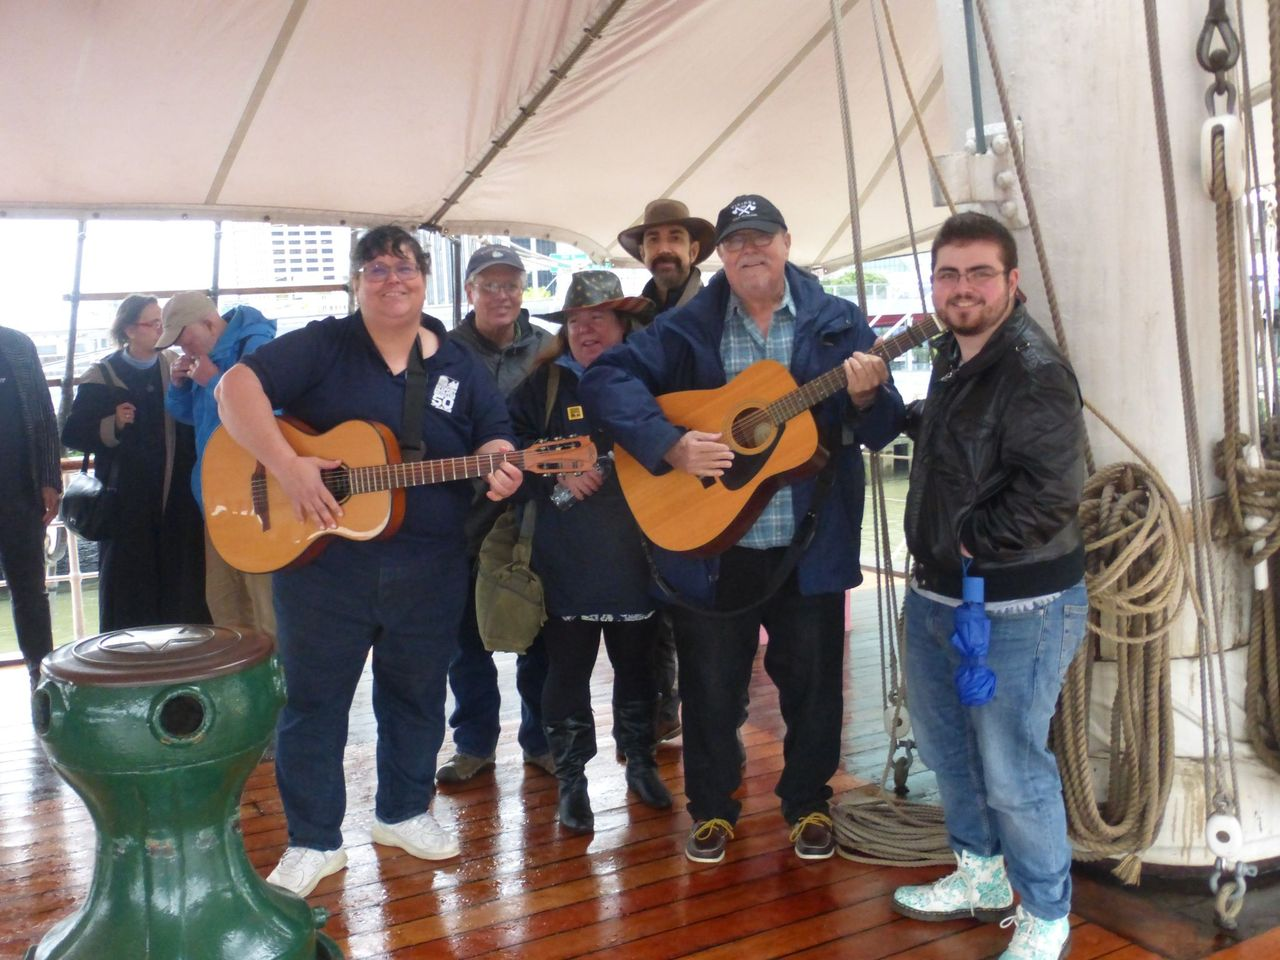 ONLINE Virtual Sea Chanteys and Maritime Music Broadcast at South Street Seaport Museum